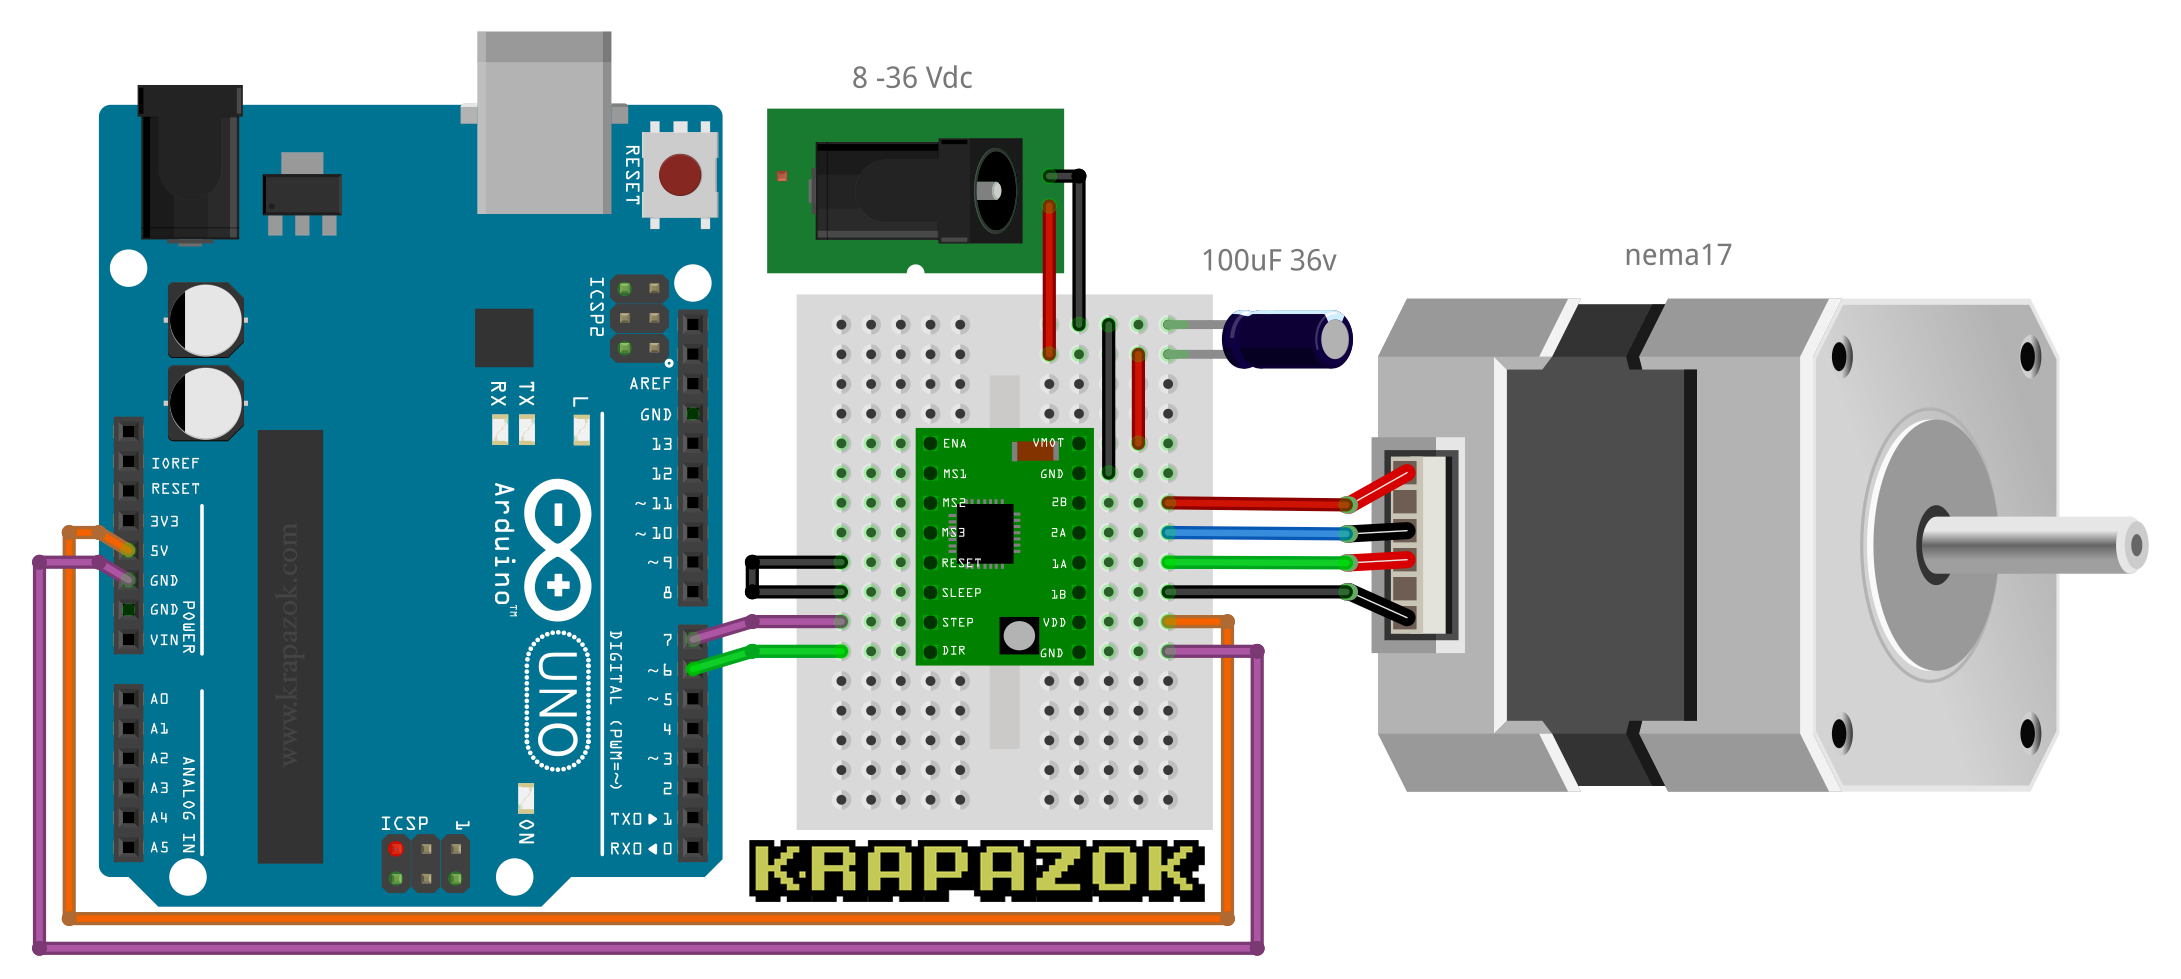 Nema 23 Stepper Motor Wiring Diagram Arduino Diy Enthusiasts Diagrams Nema17 And Drv8825 R2d2 2017 Wiki Github Rh Com Configuration For Linear Actuators With